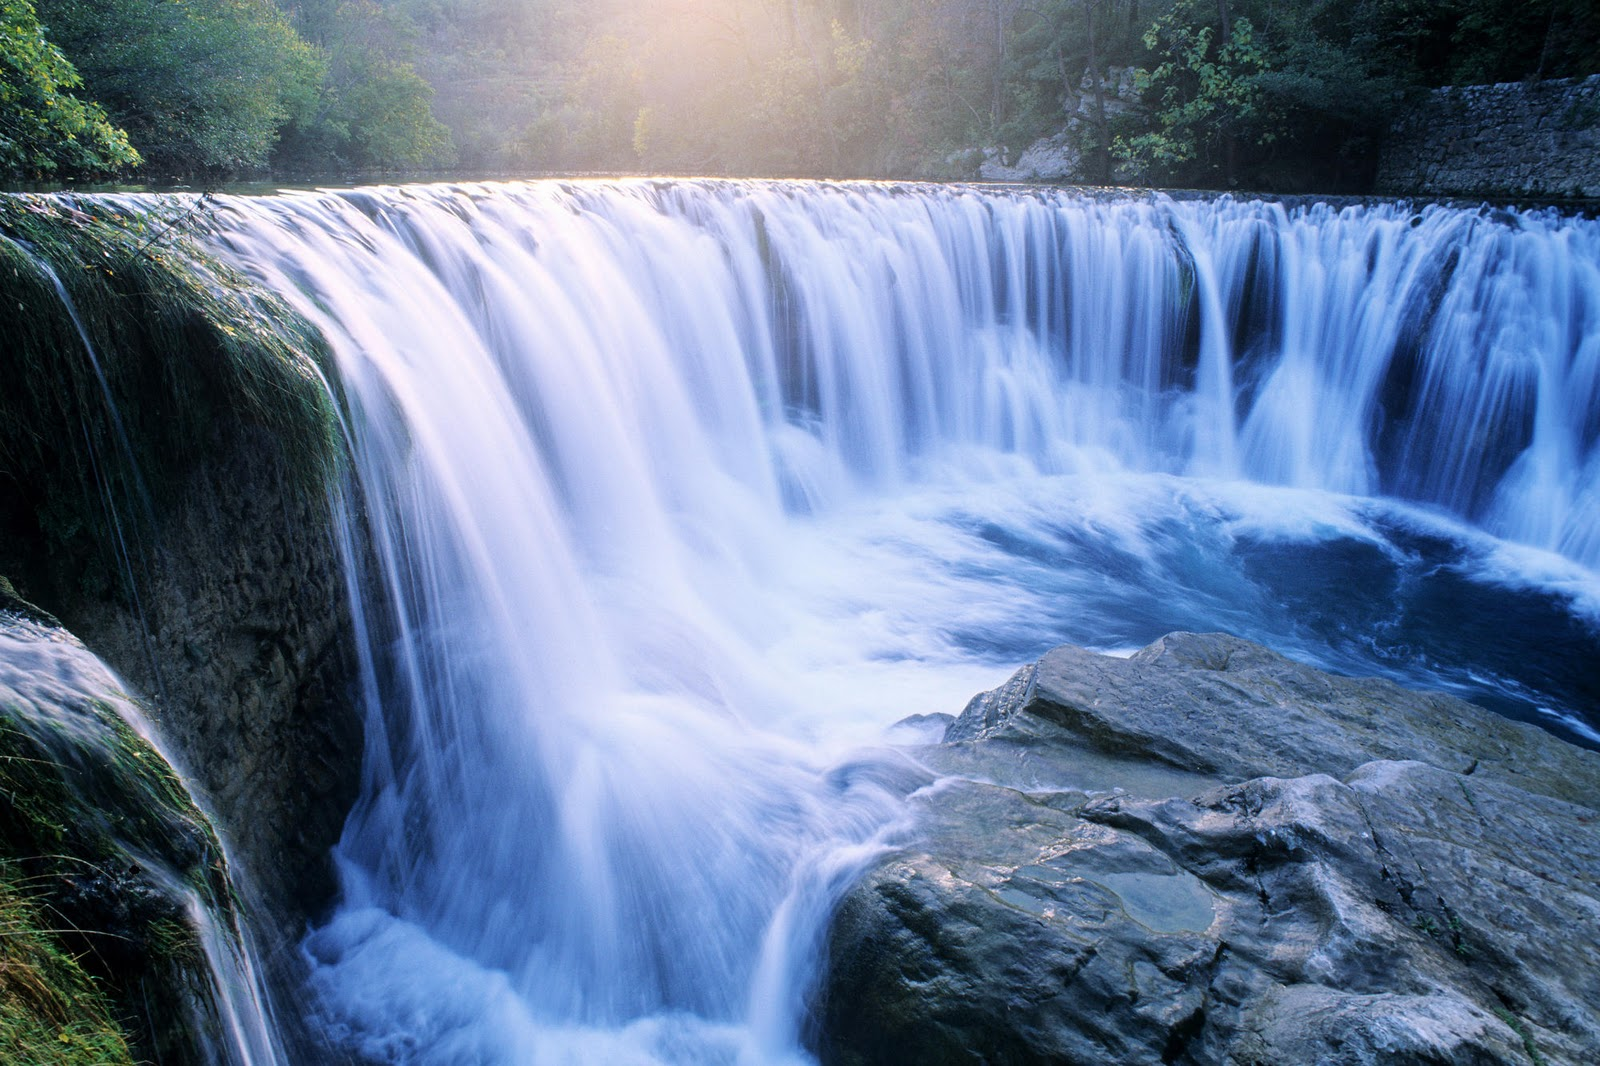 Waterfall Nature Wallpaper Fresh Your Mind